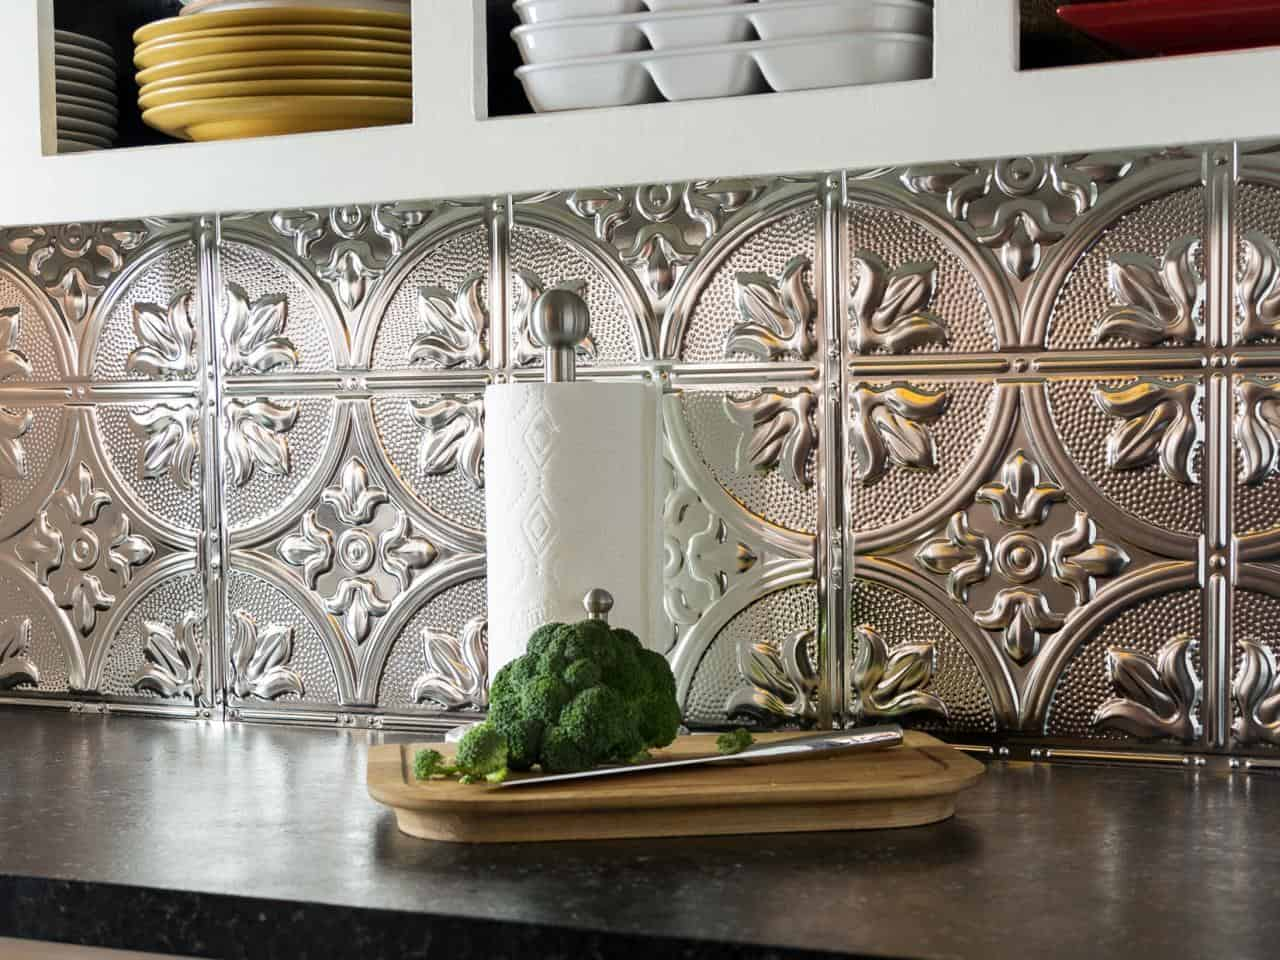 Tin tile kitchen backsplash